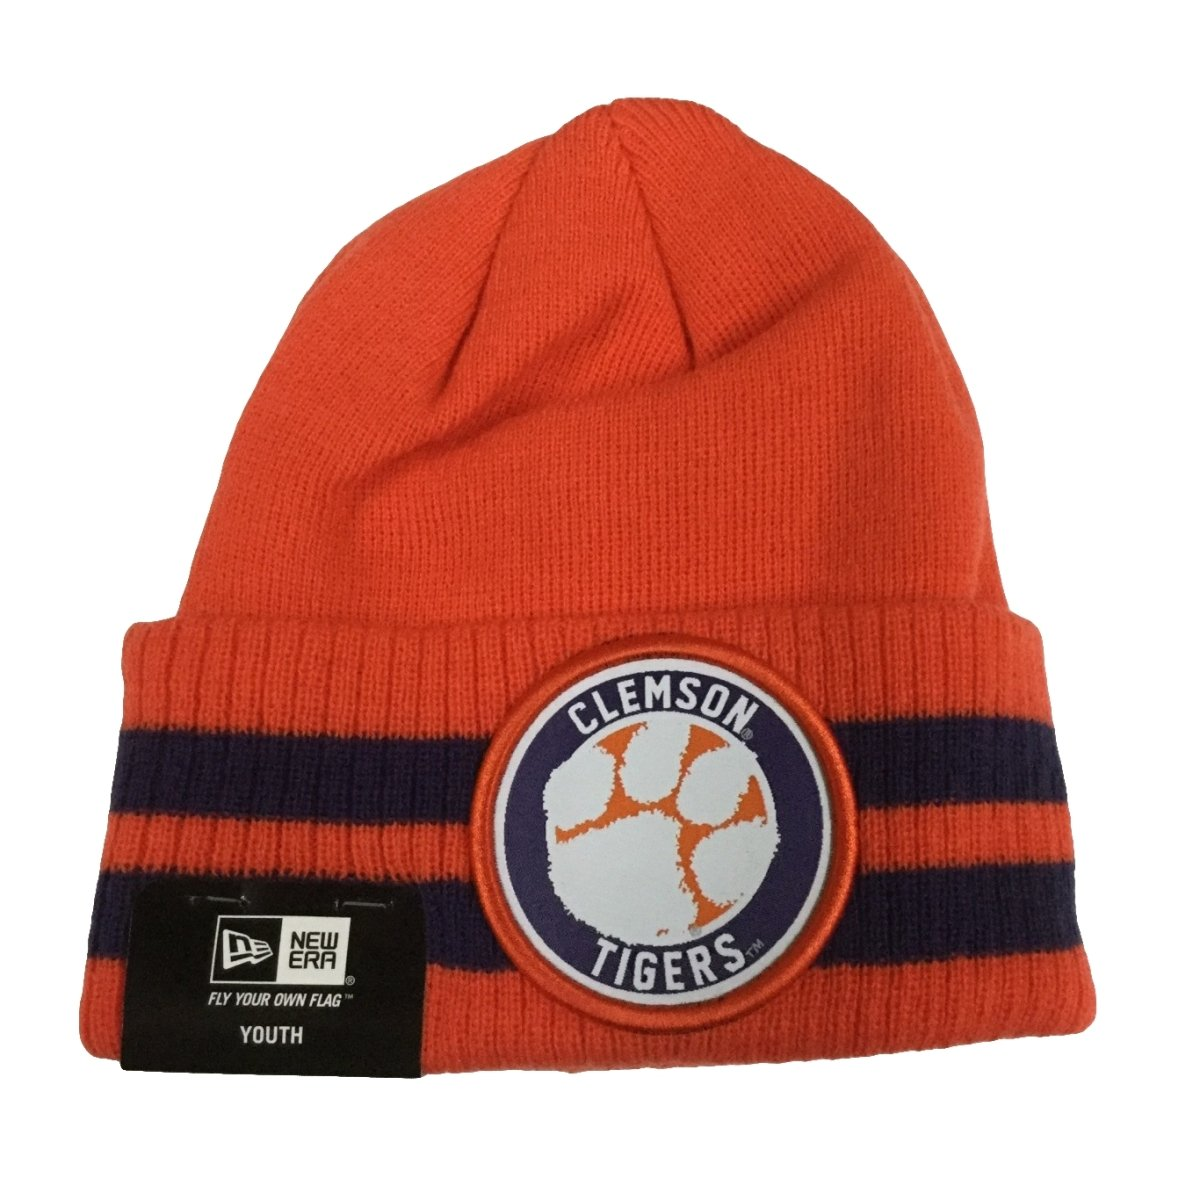 Youth Striped Remix Knit Beanie - Mr. Knickerbocker